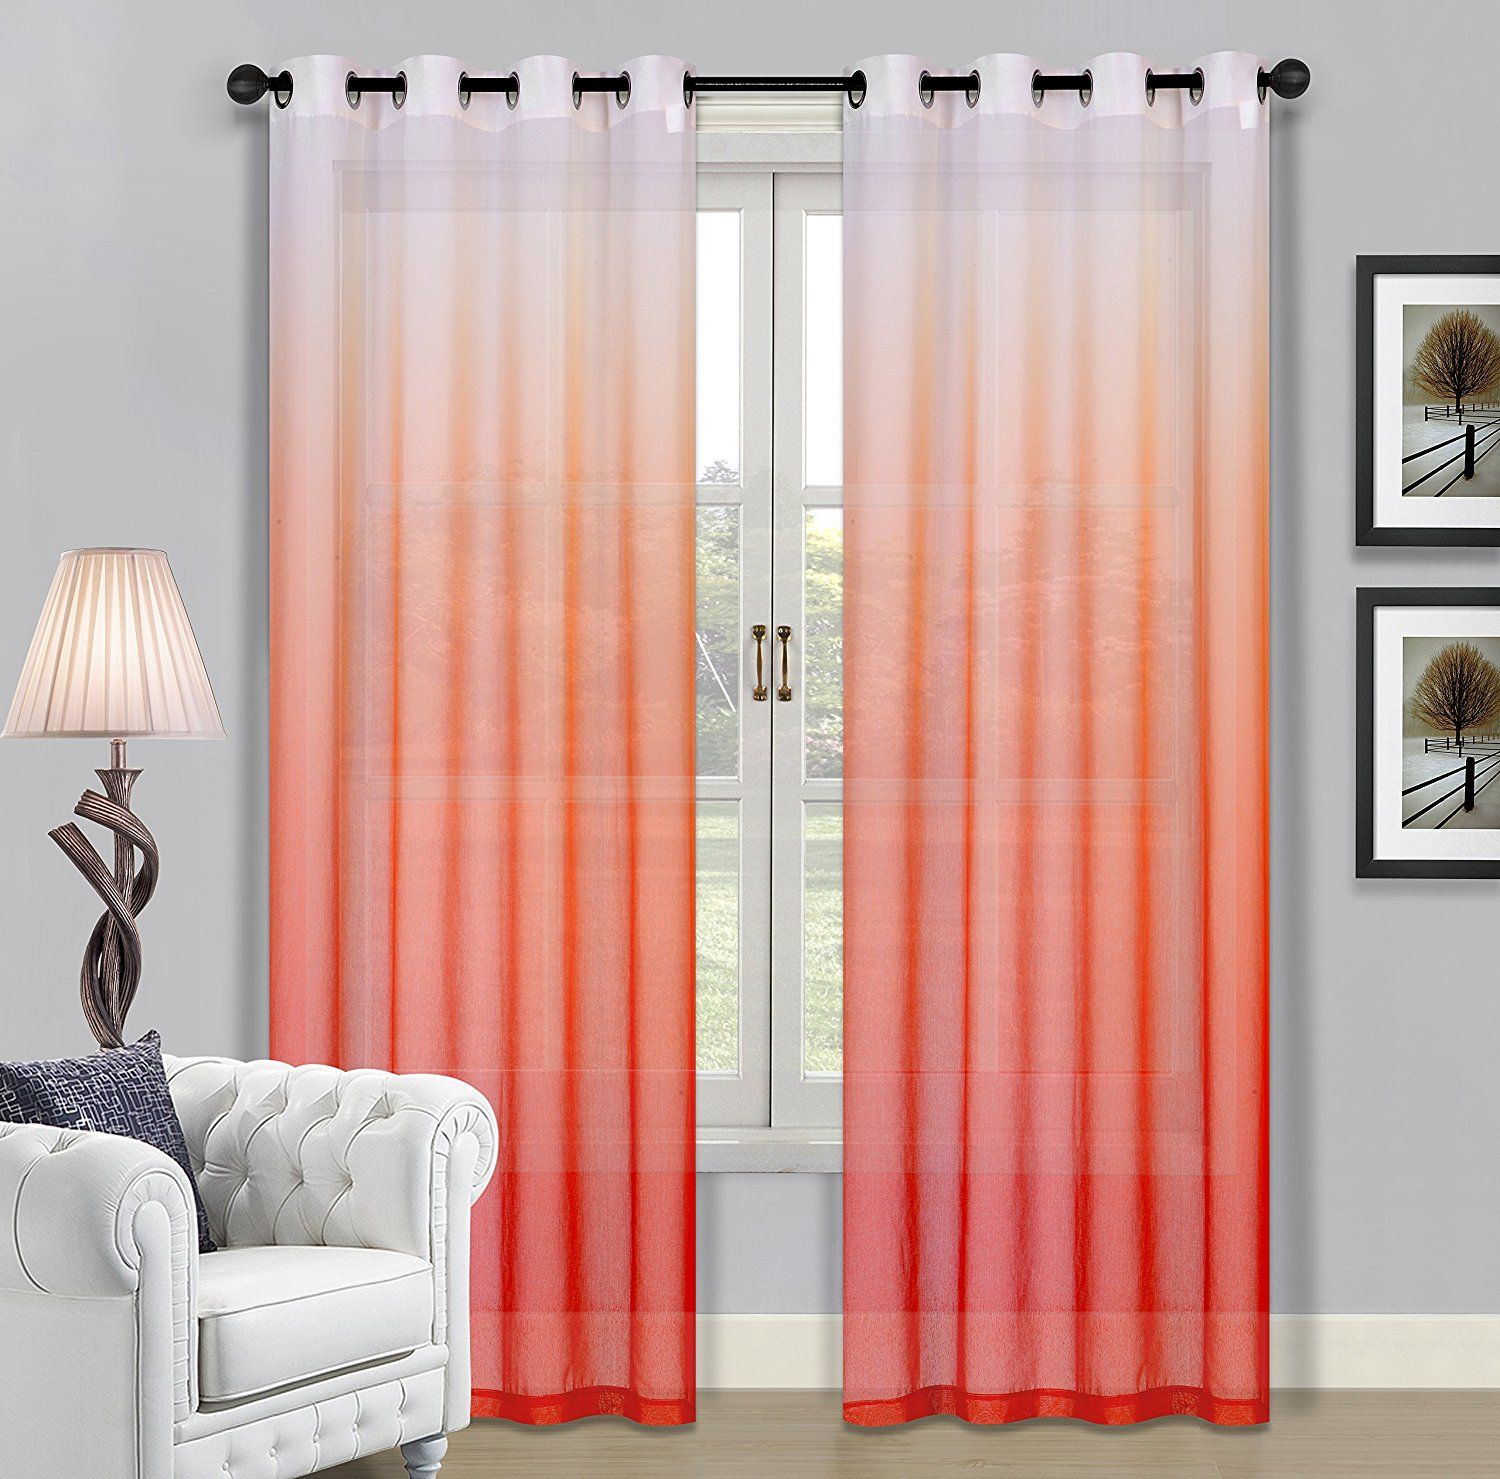 curtain curtains pin on and drapes window sale silver